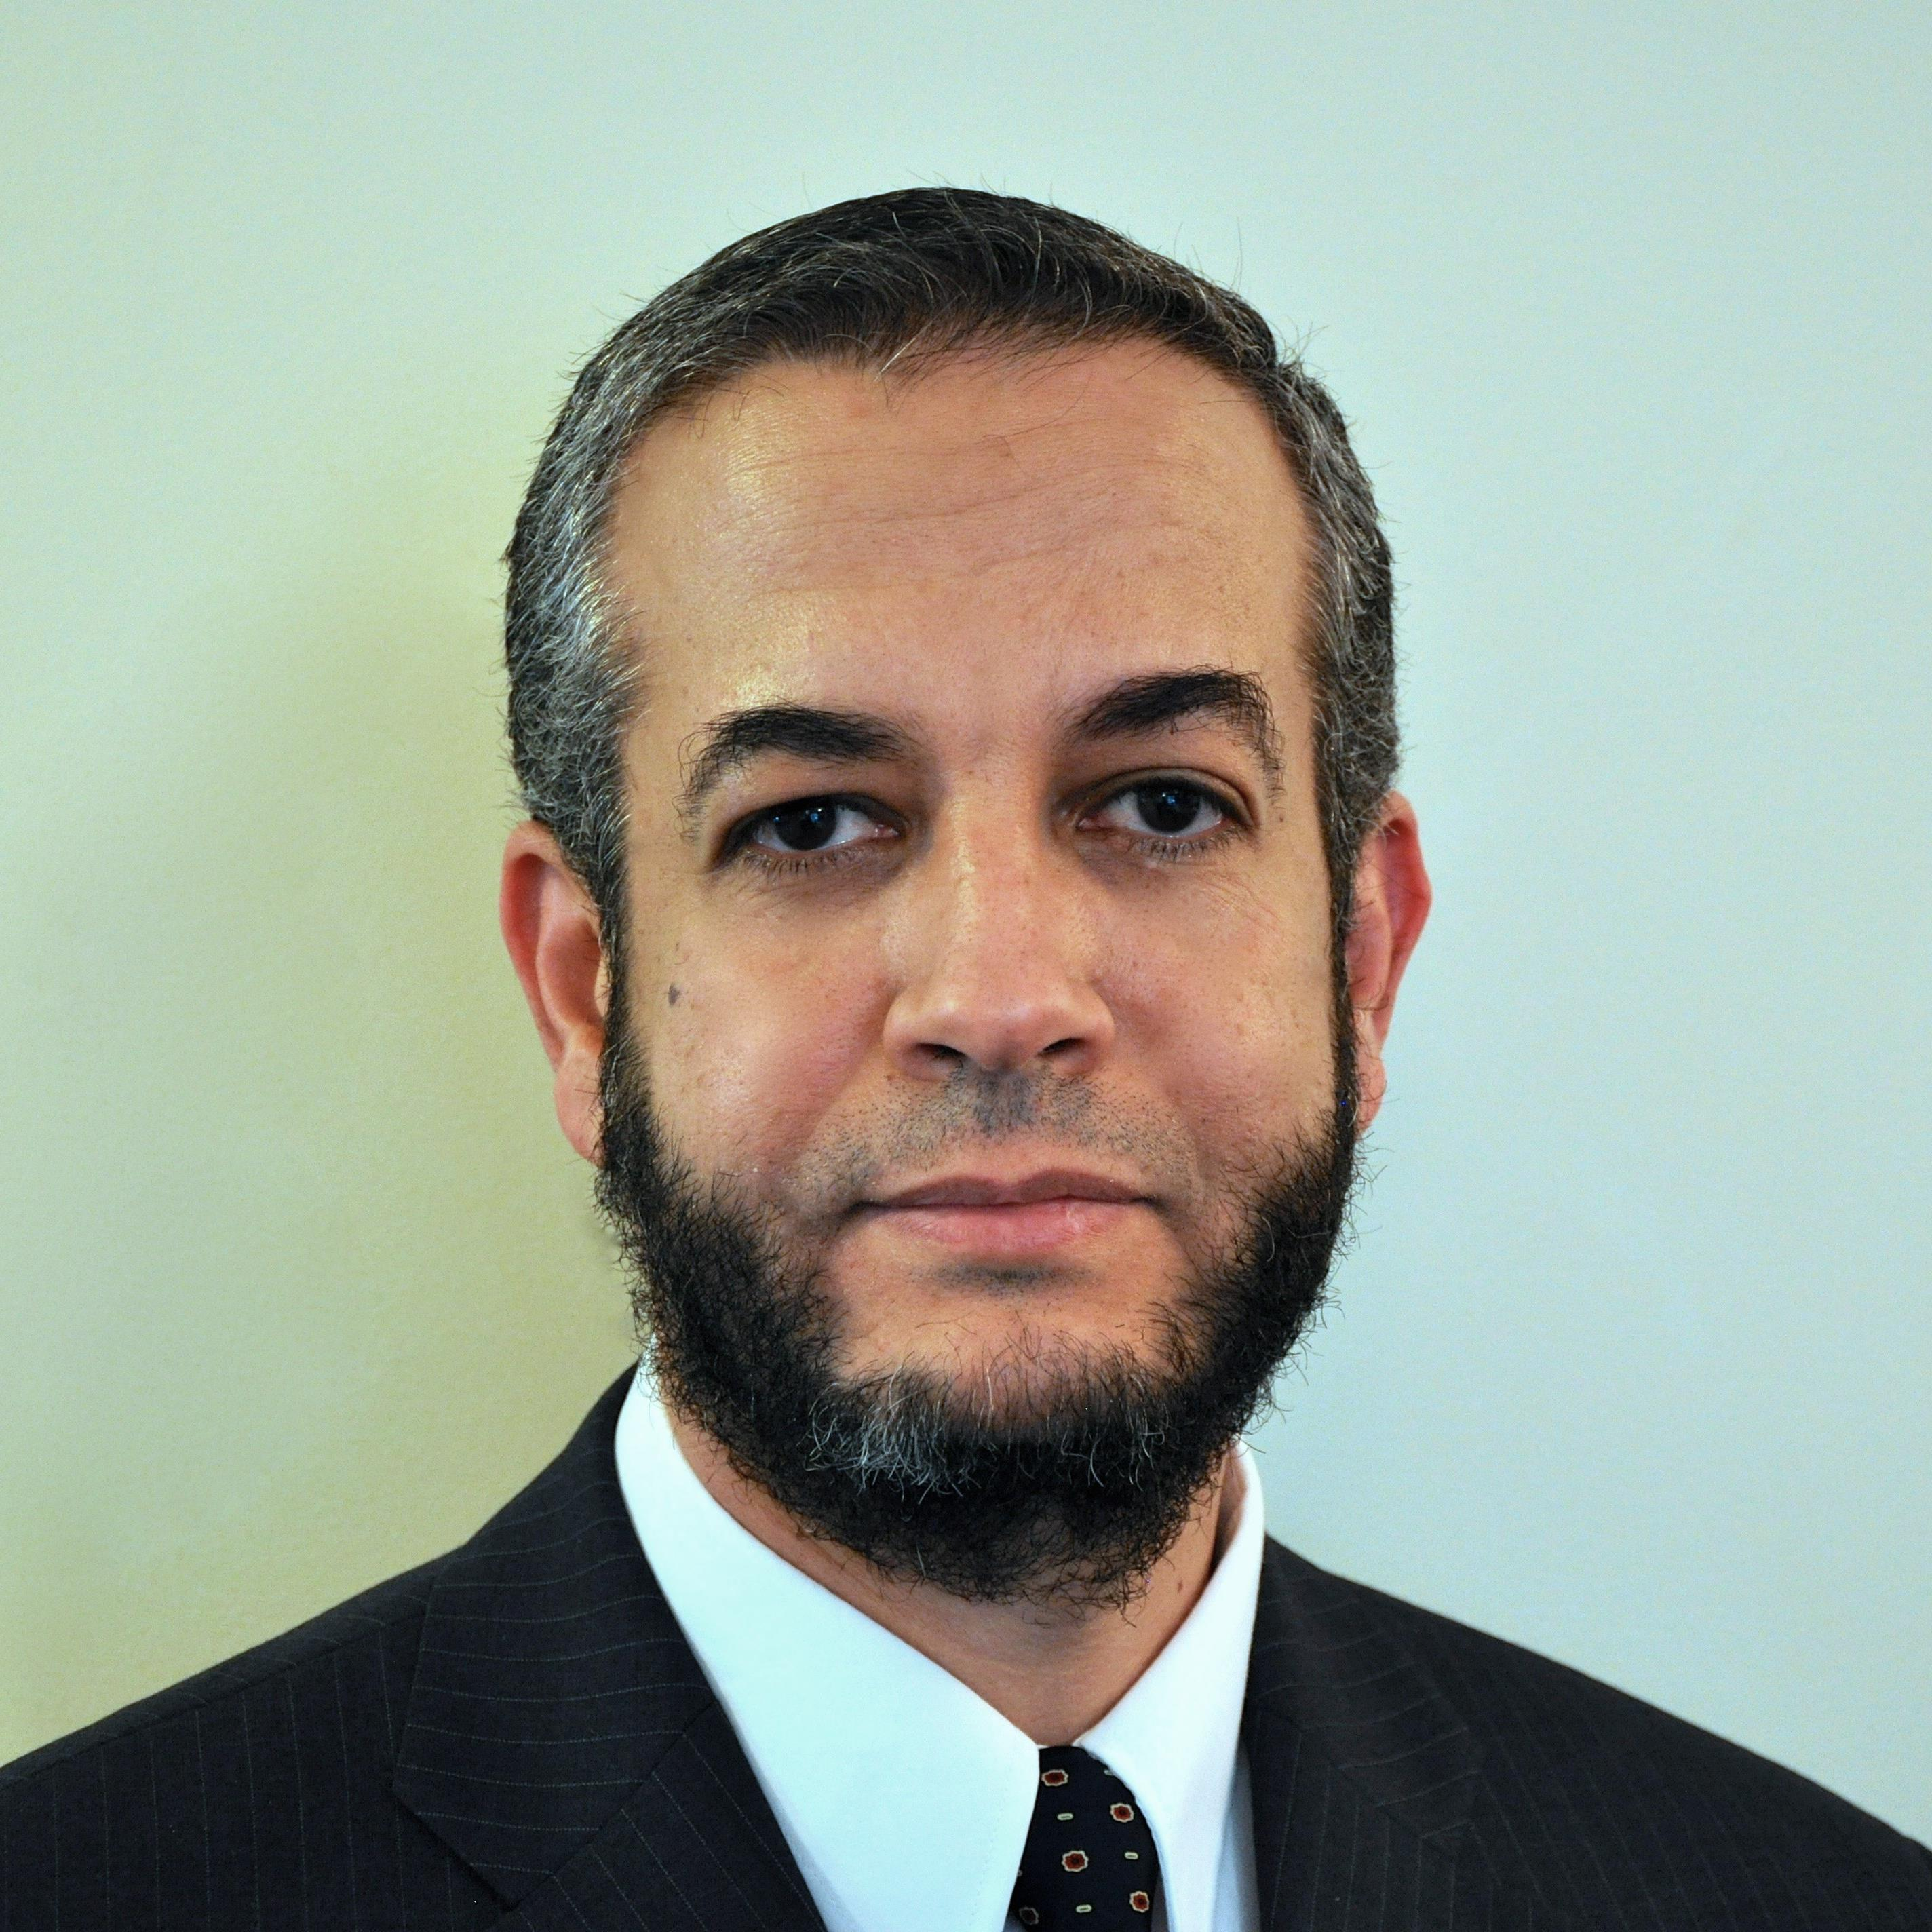 Mohamed, ICF, 2018 - Photo - 20180724.jpg